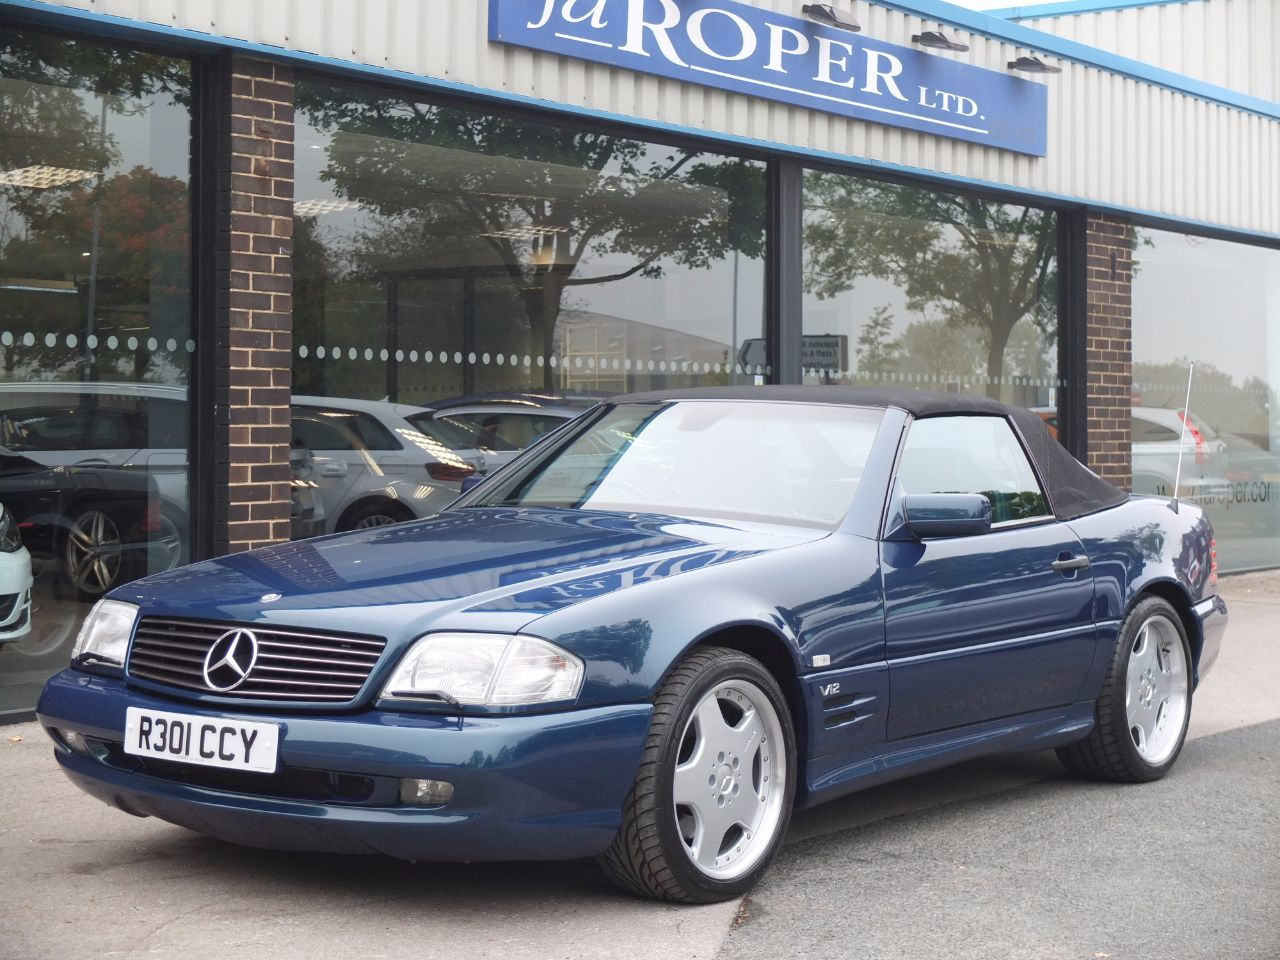 Mercedes-Benz 600 6.0 SL 600 AUTO Convertible Petrol Designo Vario Paint Finish